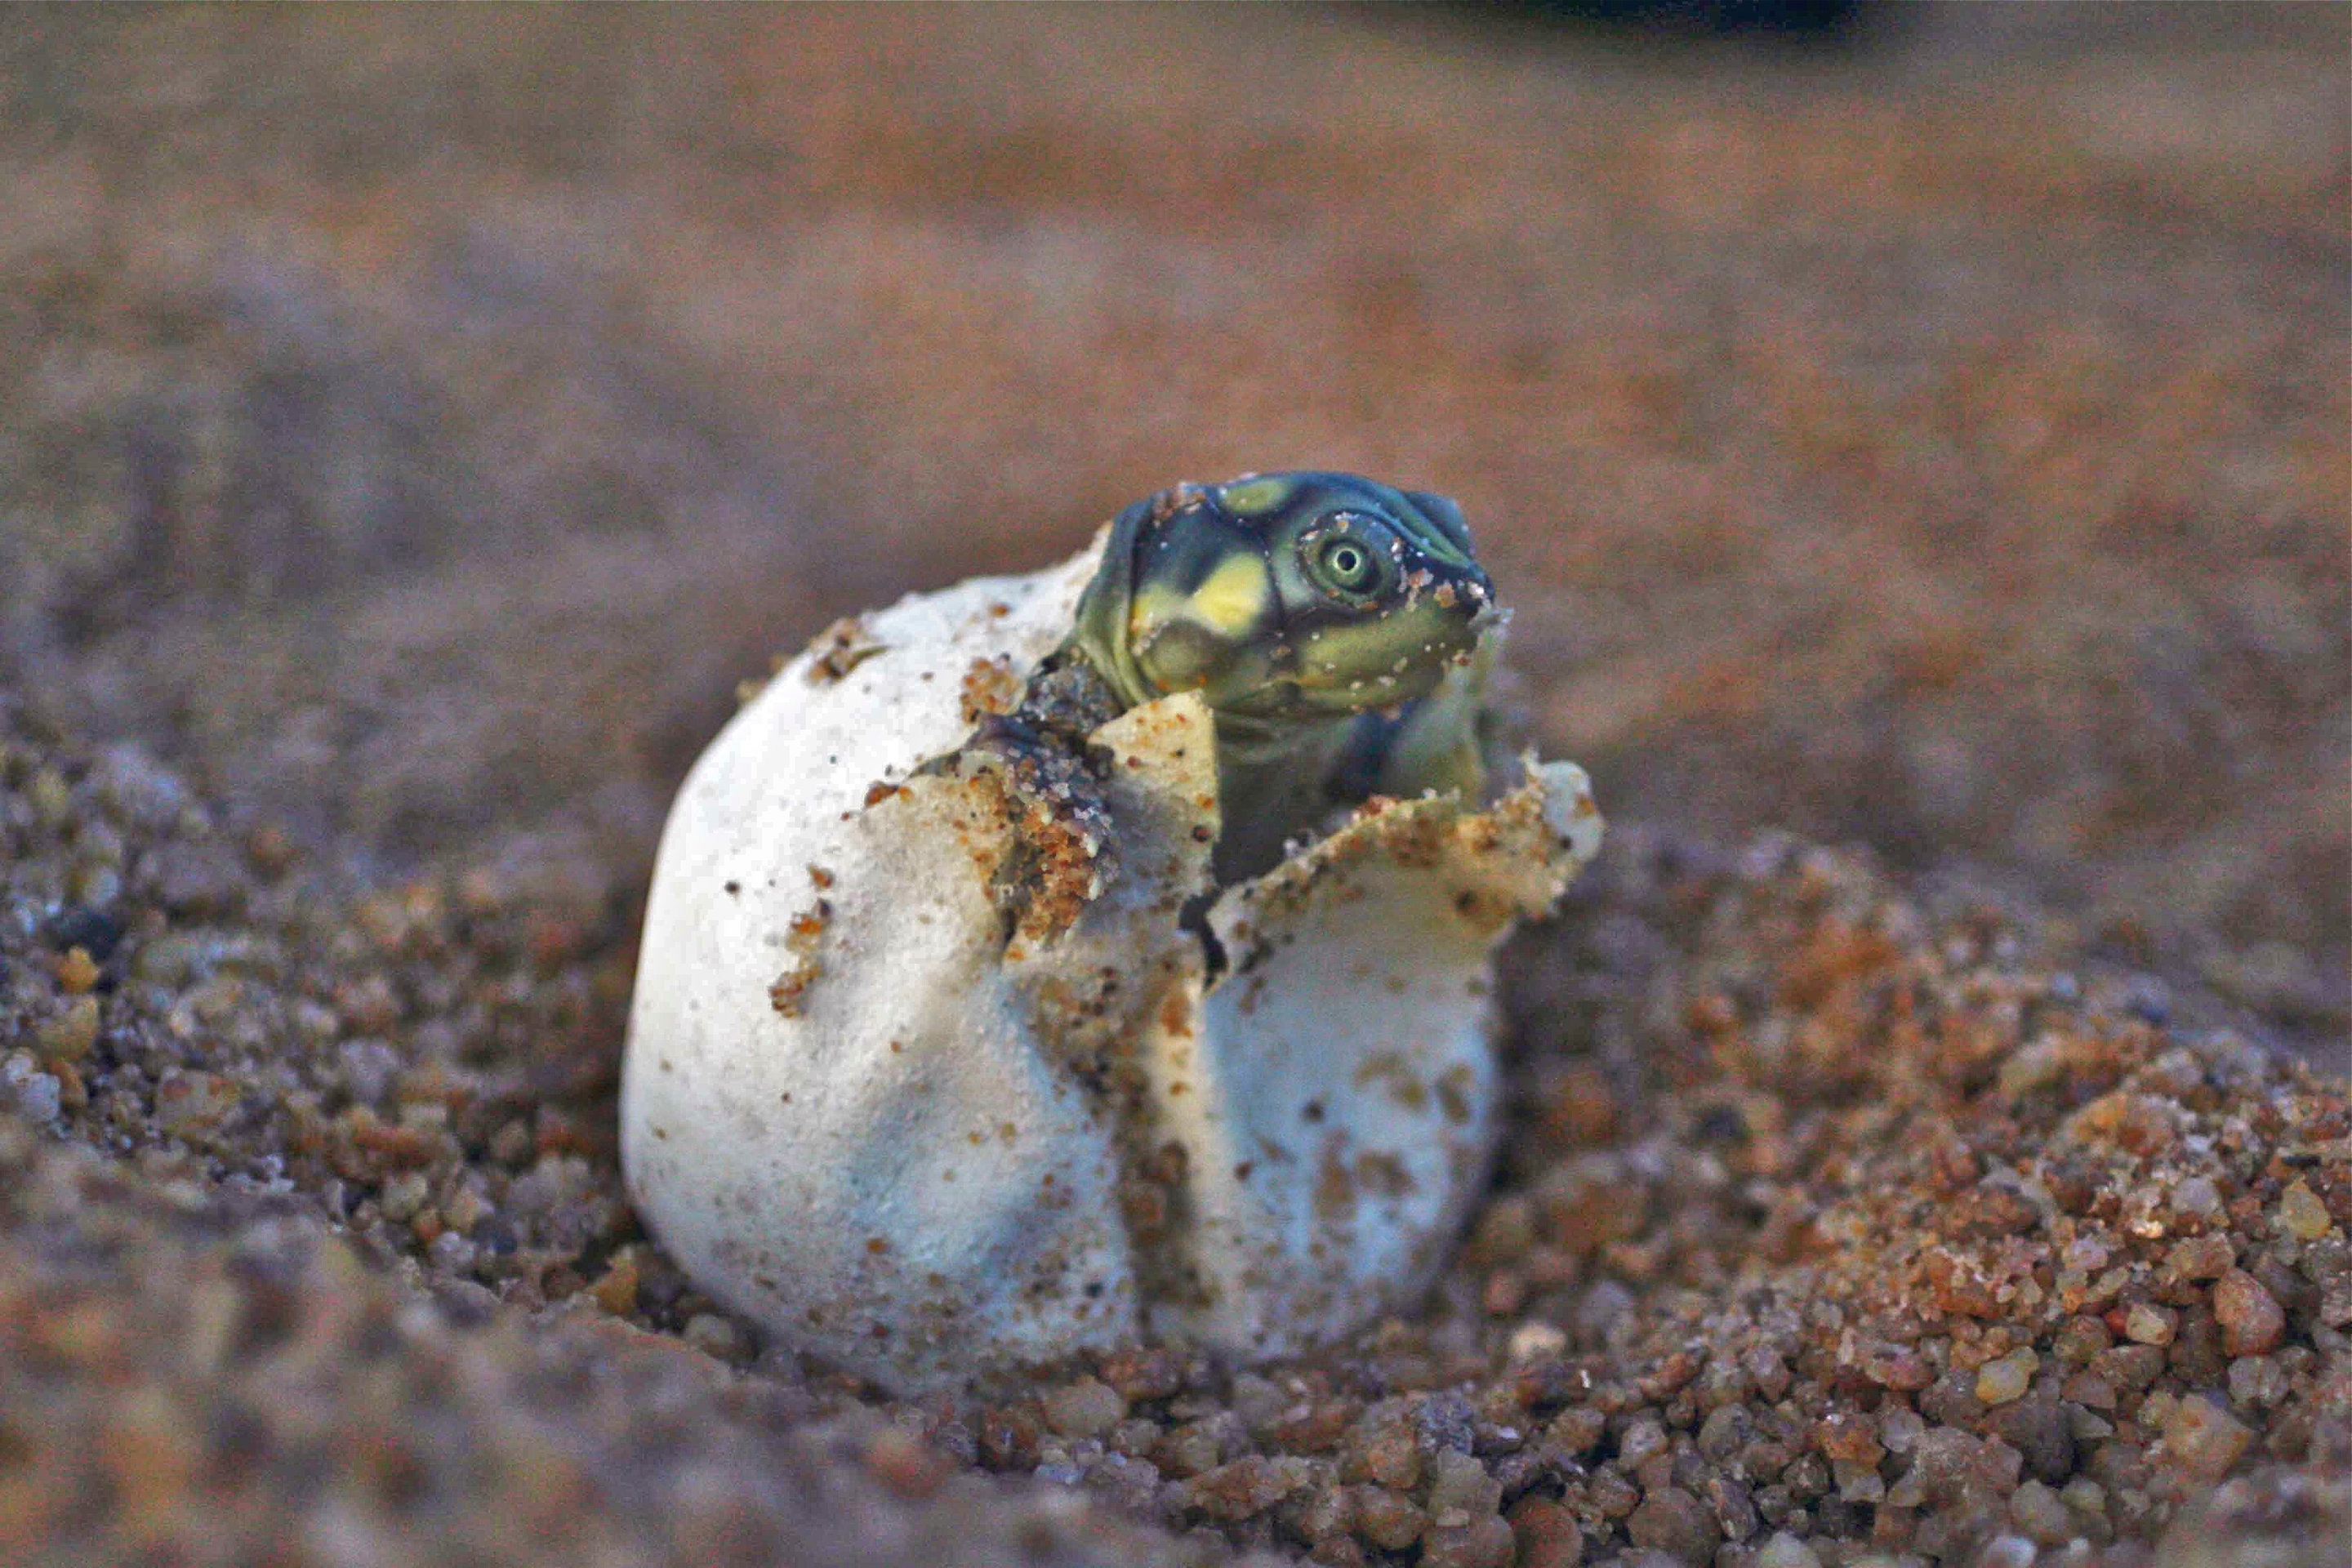 Giant South American Turtle hatchlings are making a comeback thanks to local conservation efforts.